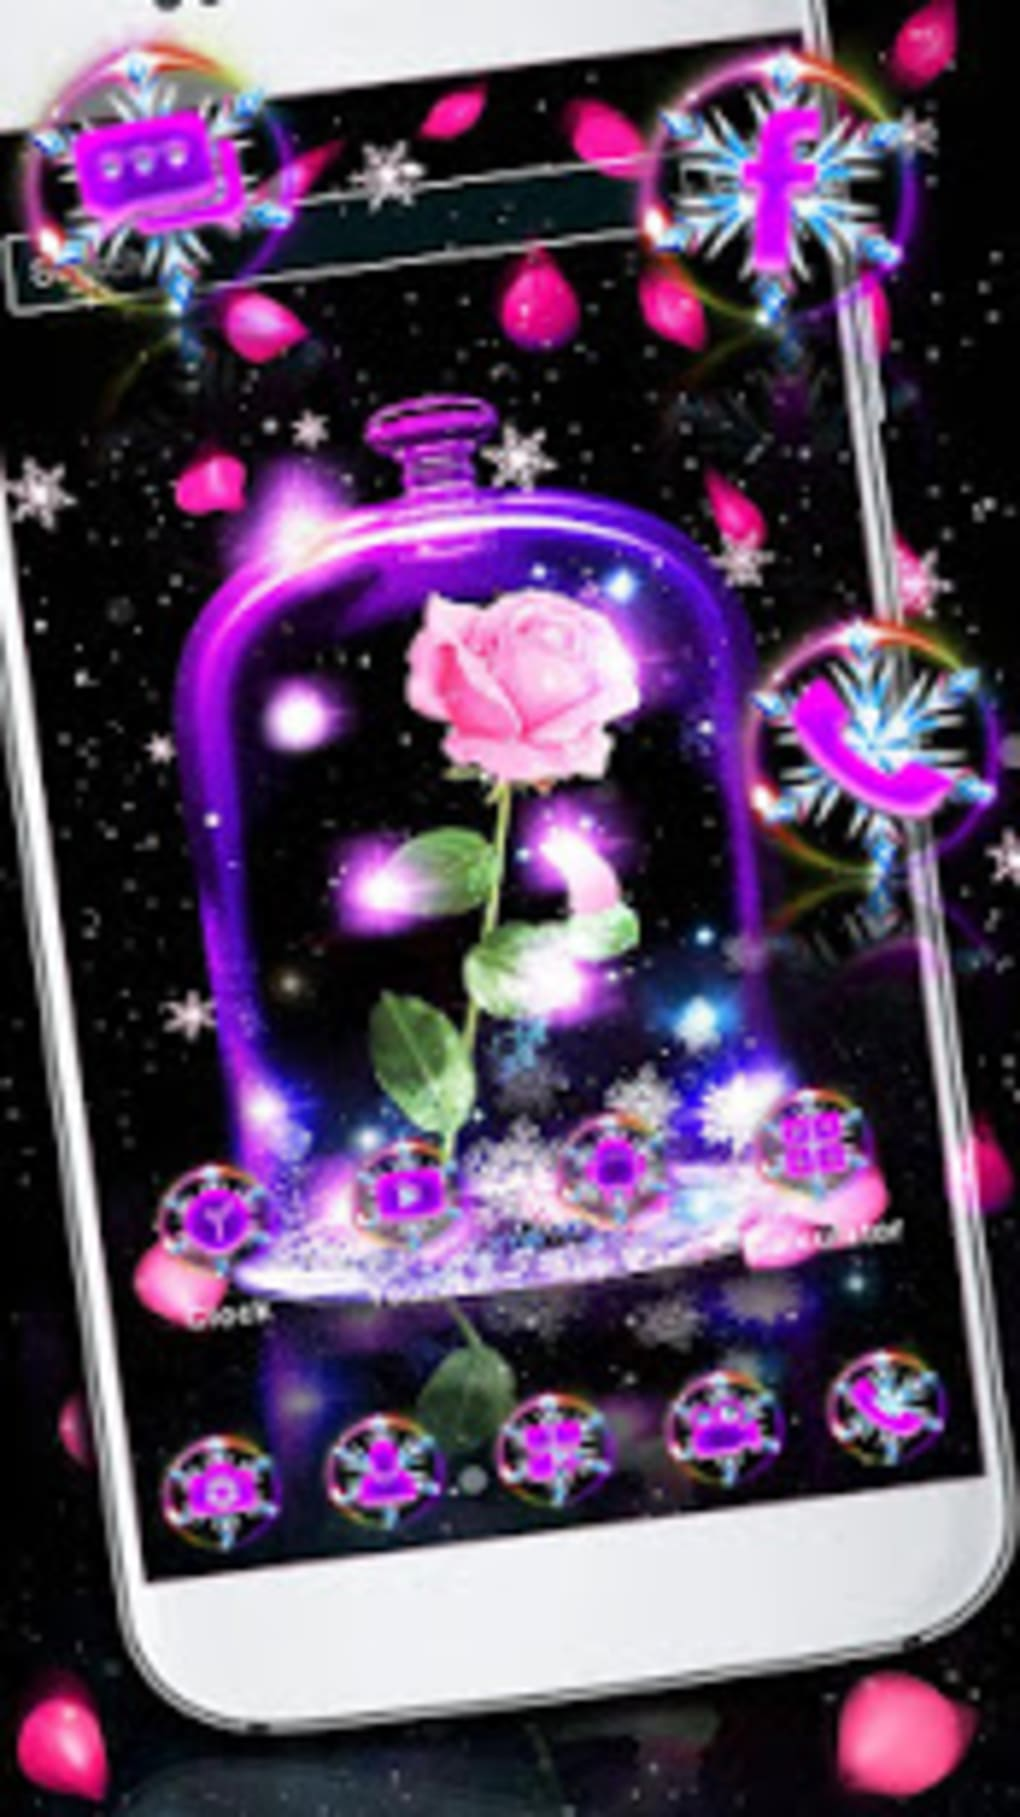 Galaxy Rose Launcher Theme Live Hd Wallpapers - Christmas Lights , HD Wallpaper & Backgrounds